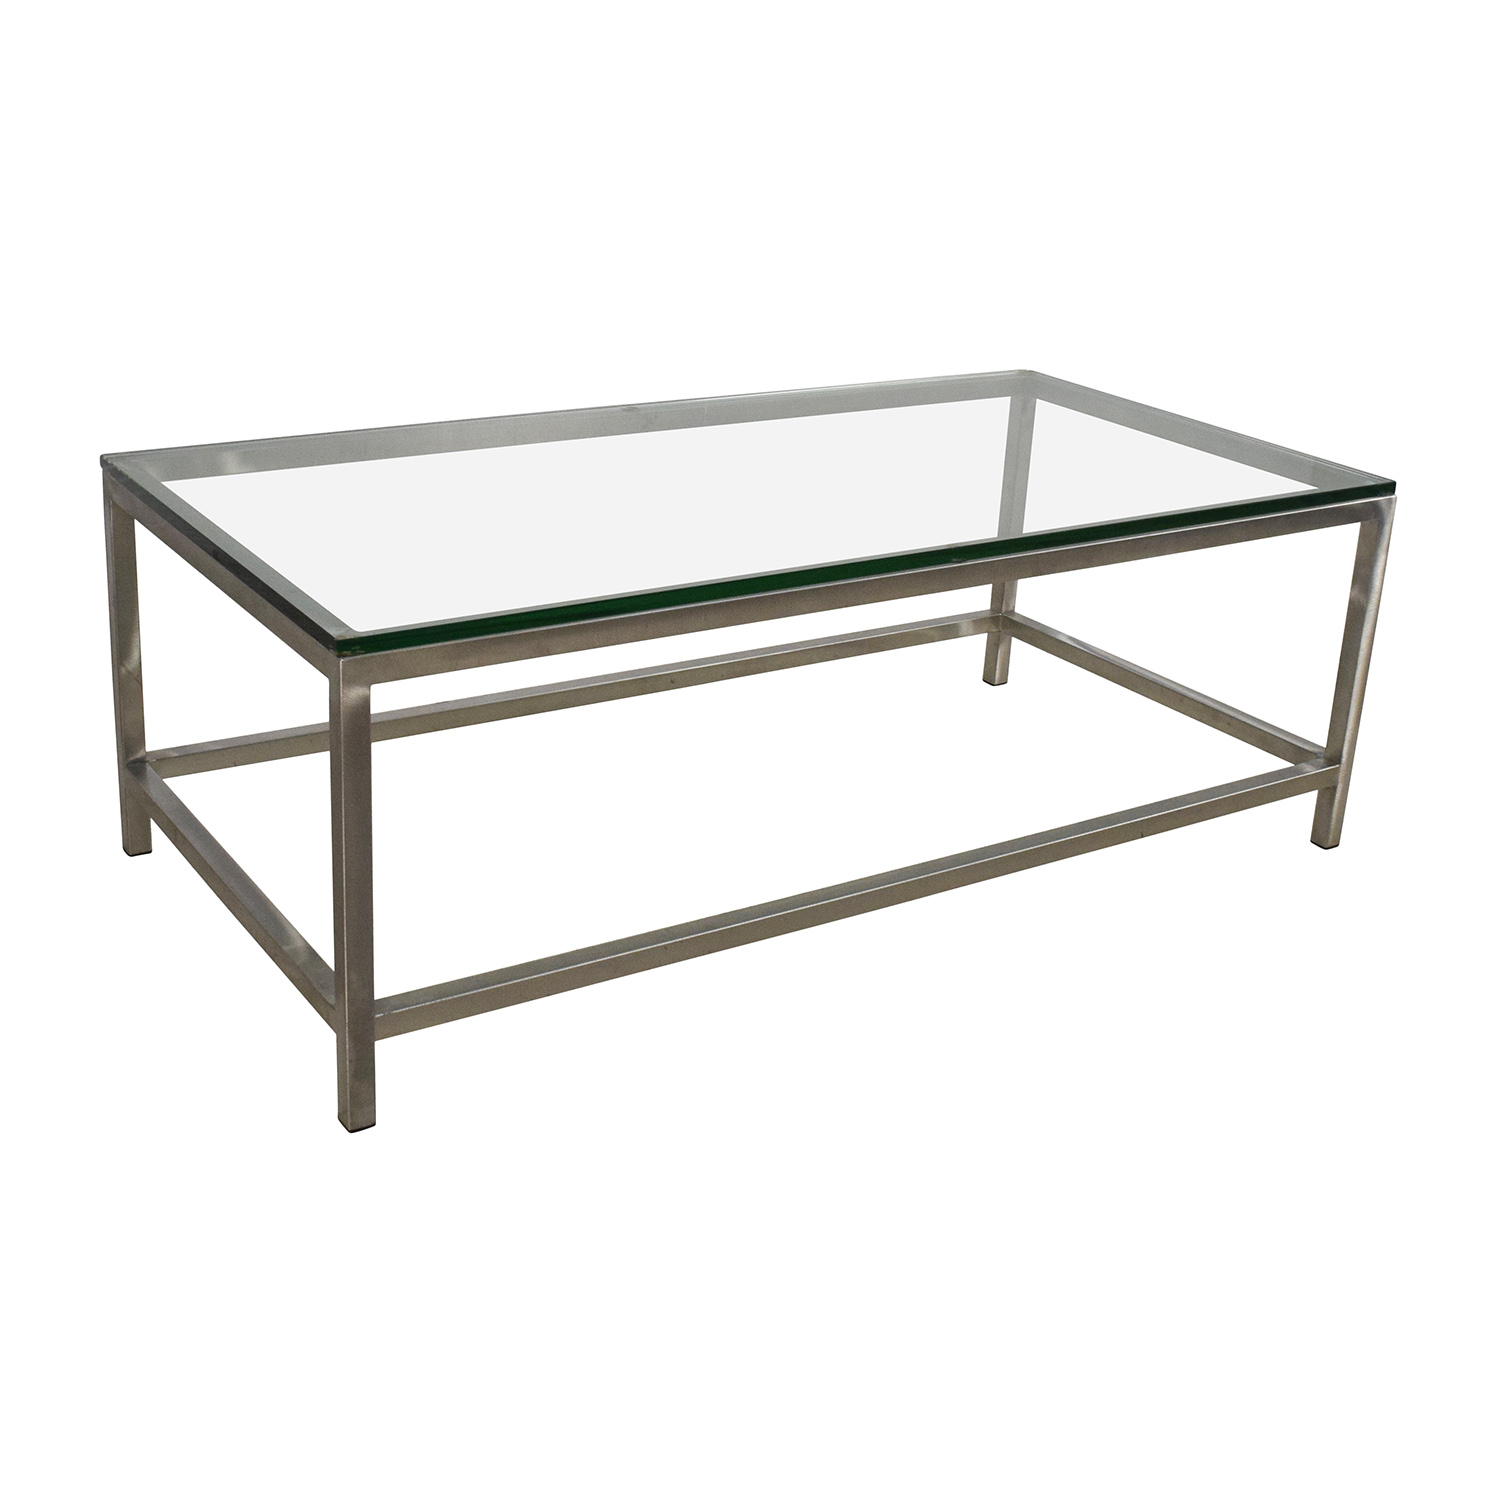 64 off crate and barrel crate barrel era rectangular glass top coffee table tables Glass top for coffee table